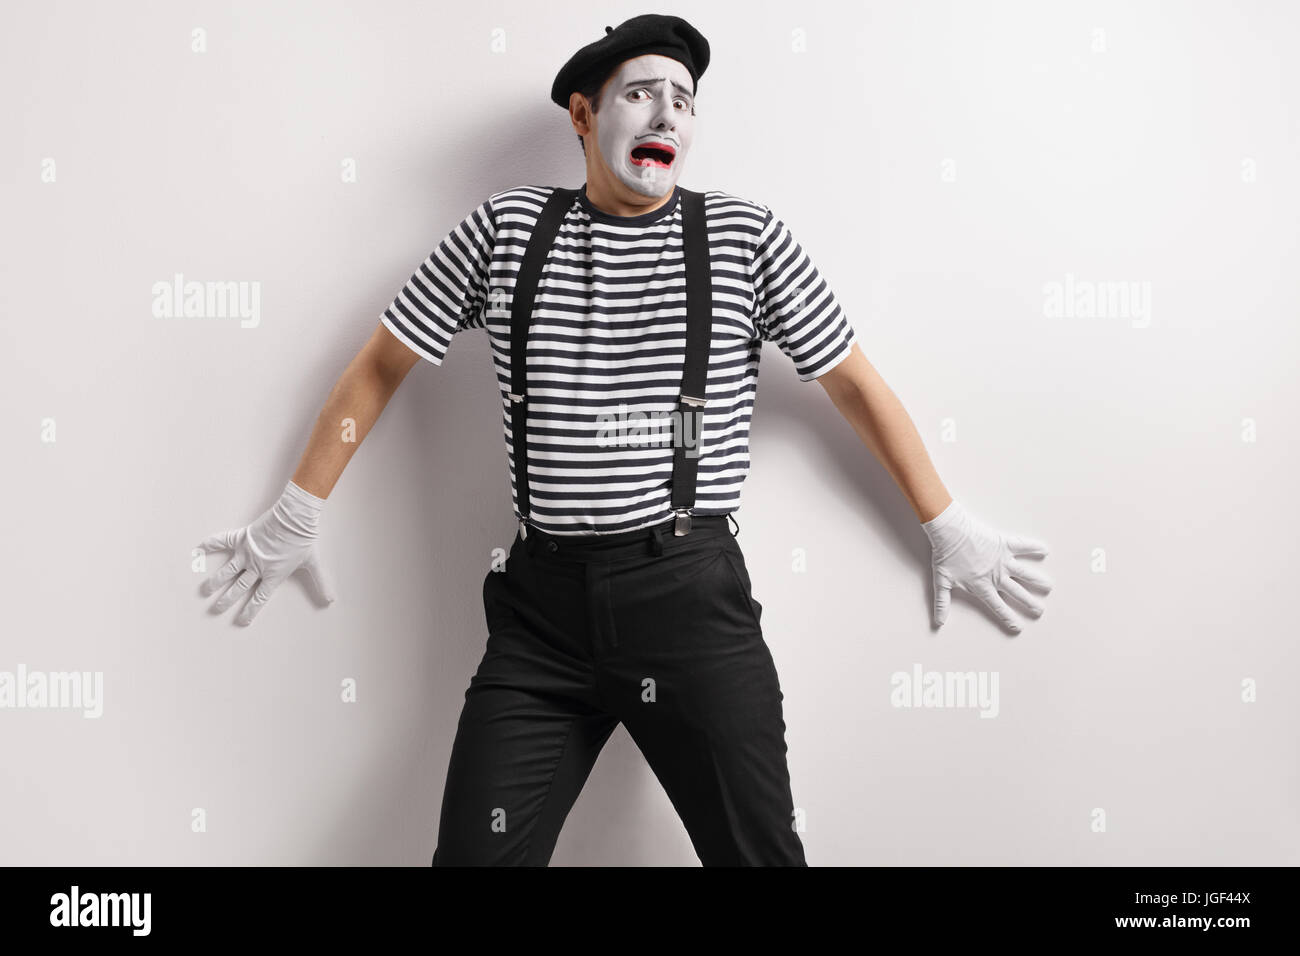 Terrified mime against a wall - Stock Image